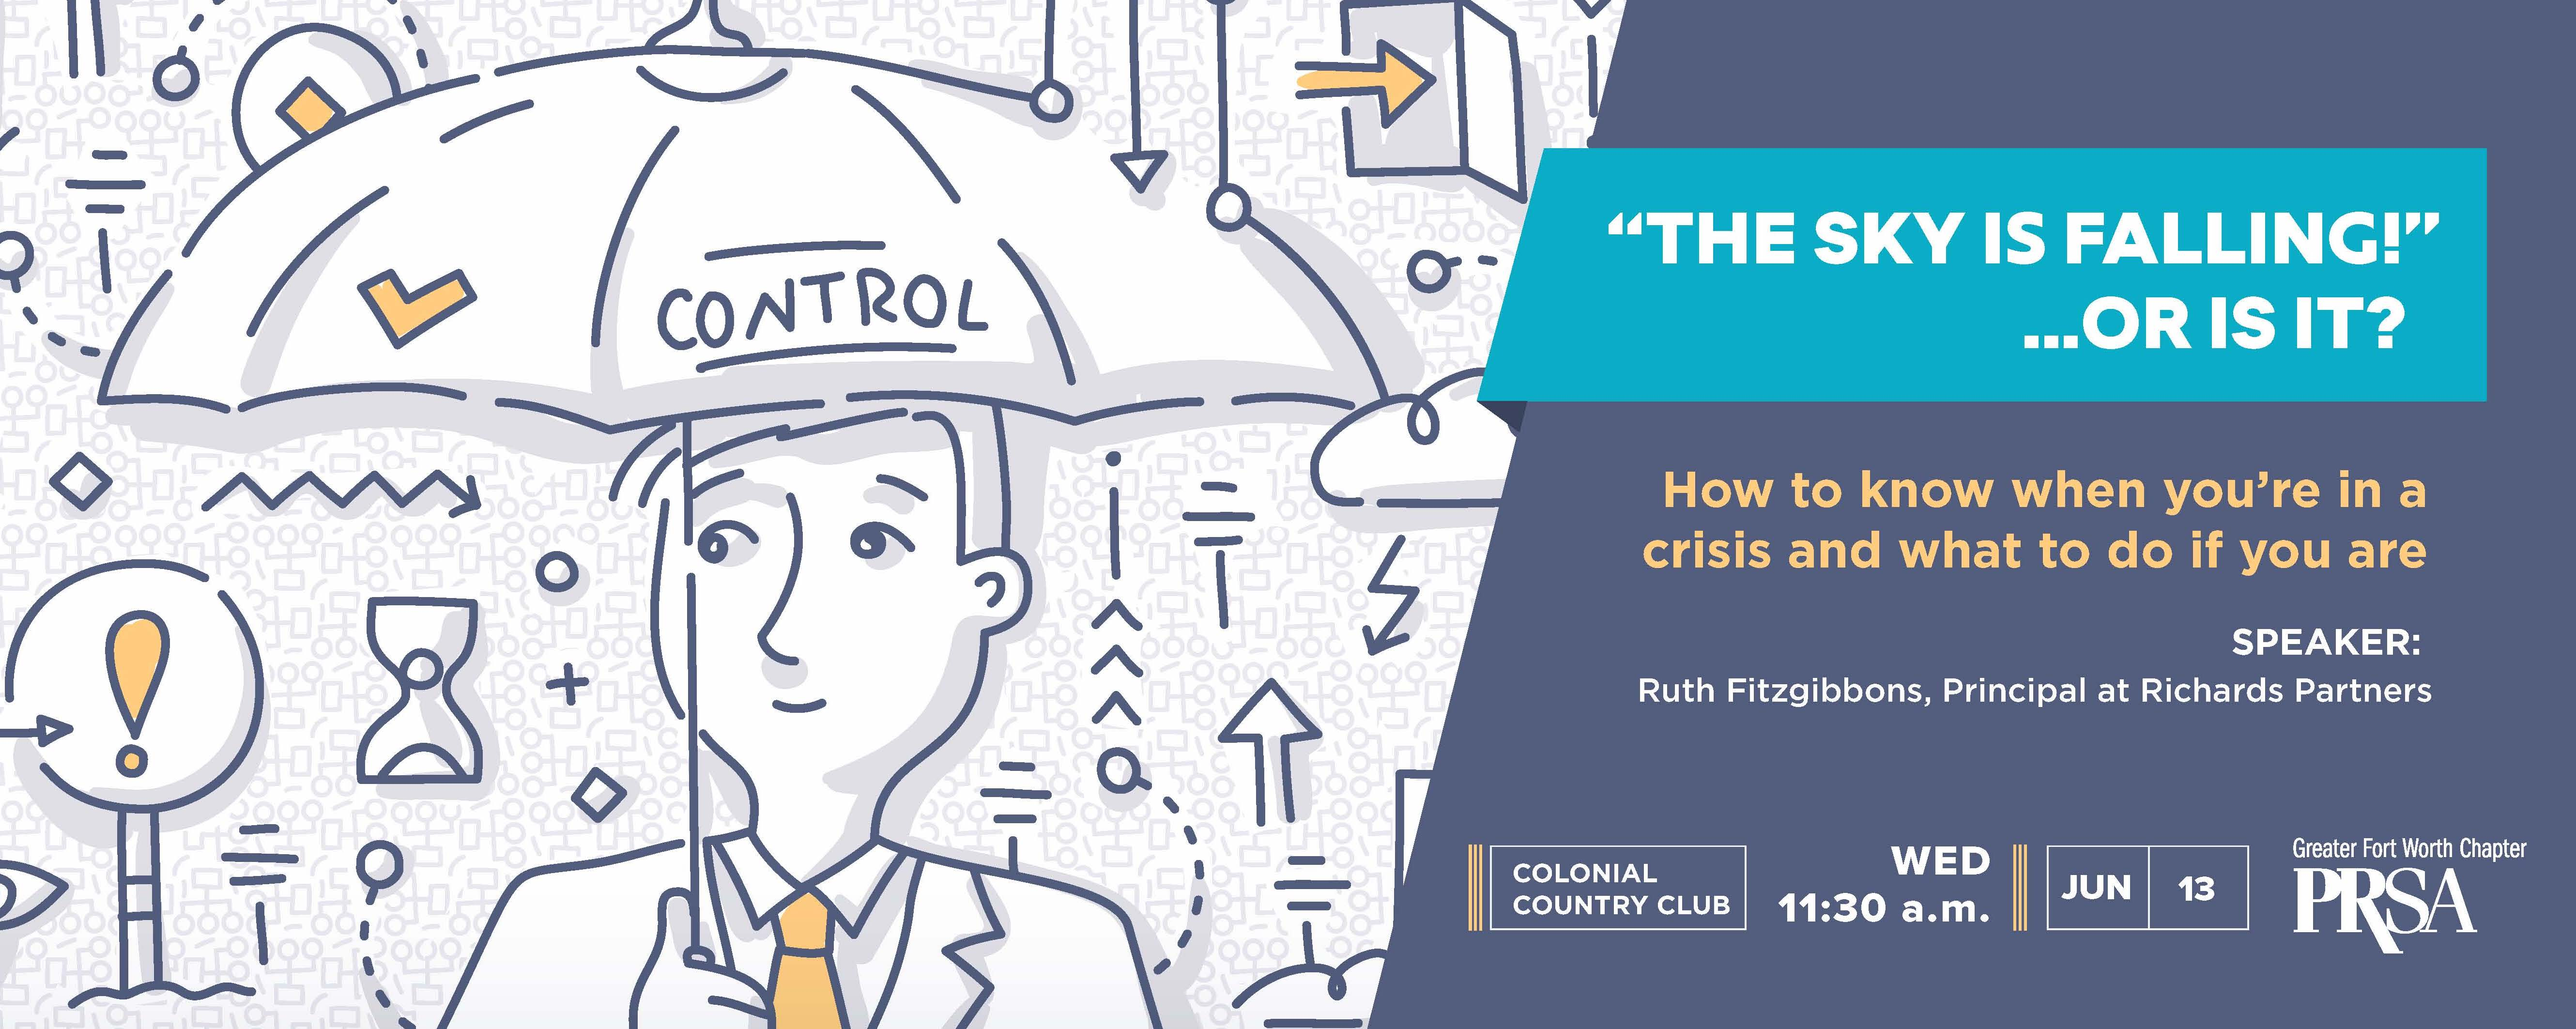 The Sky is Falling! (Or is it?) How to know when you're in a crisis and what to do if you are